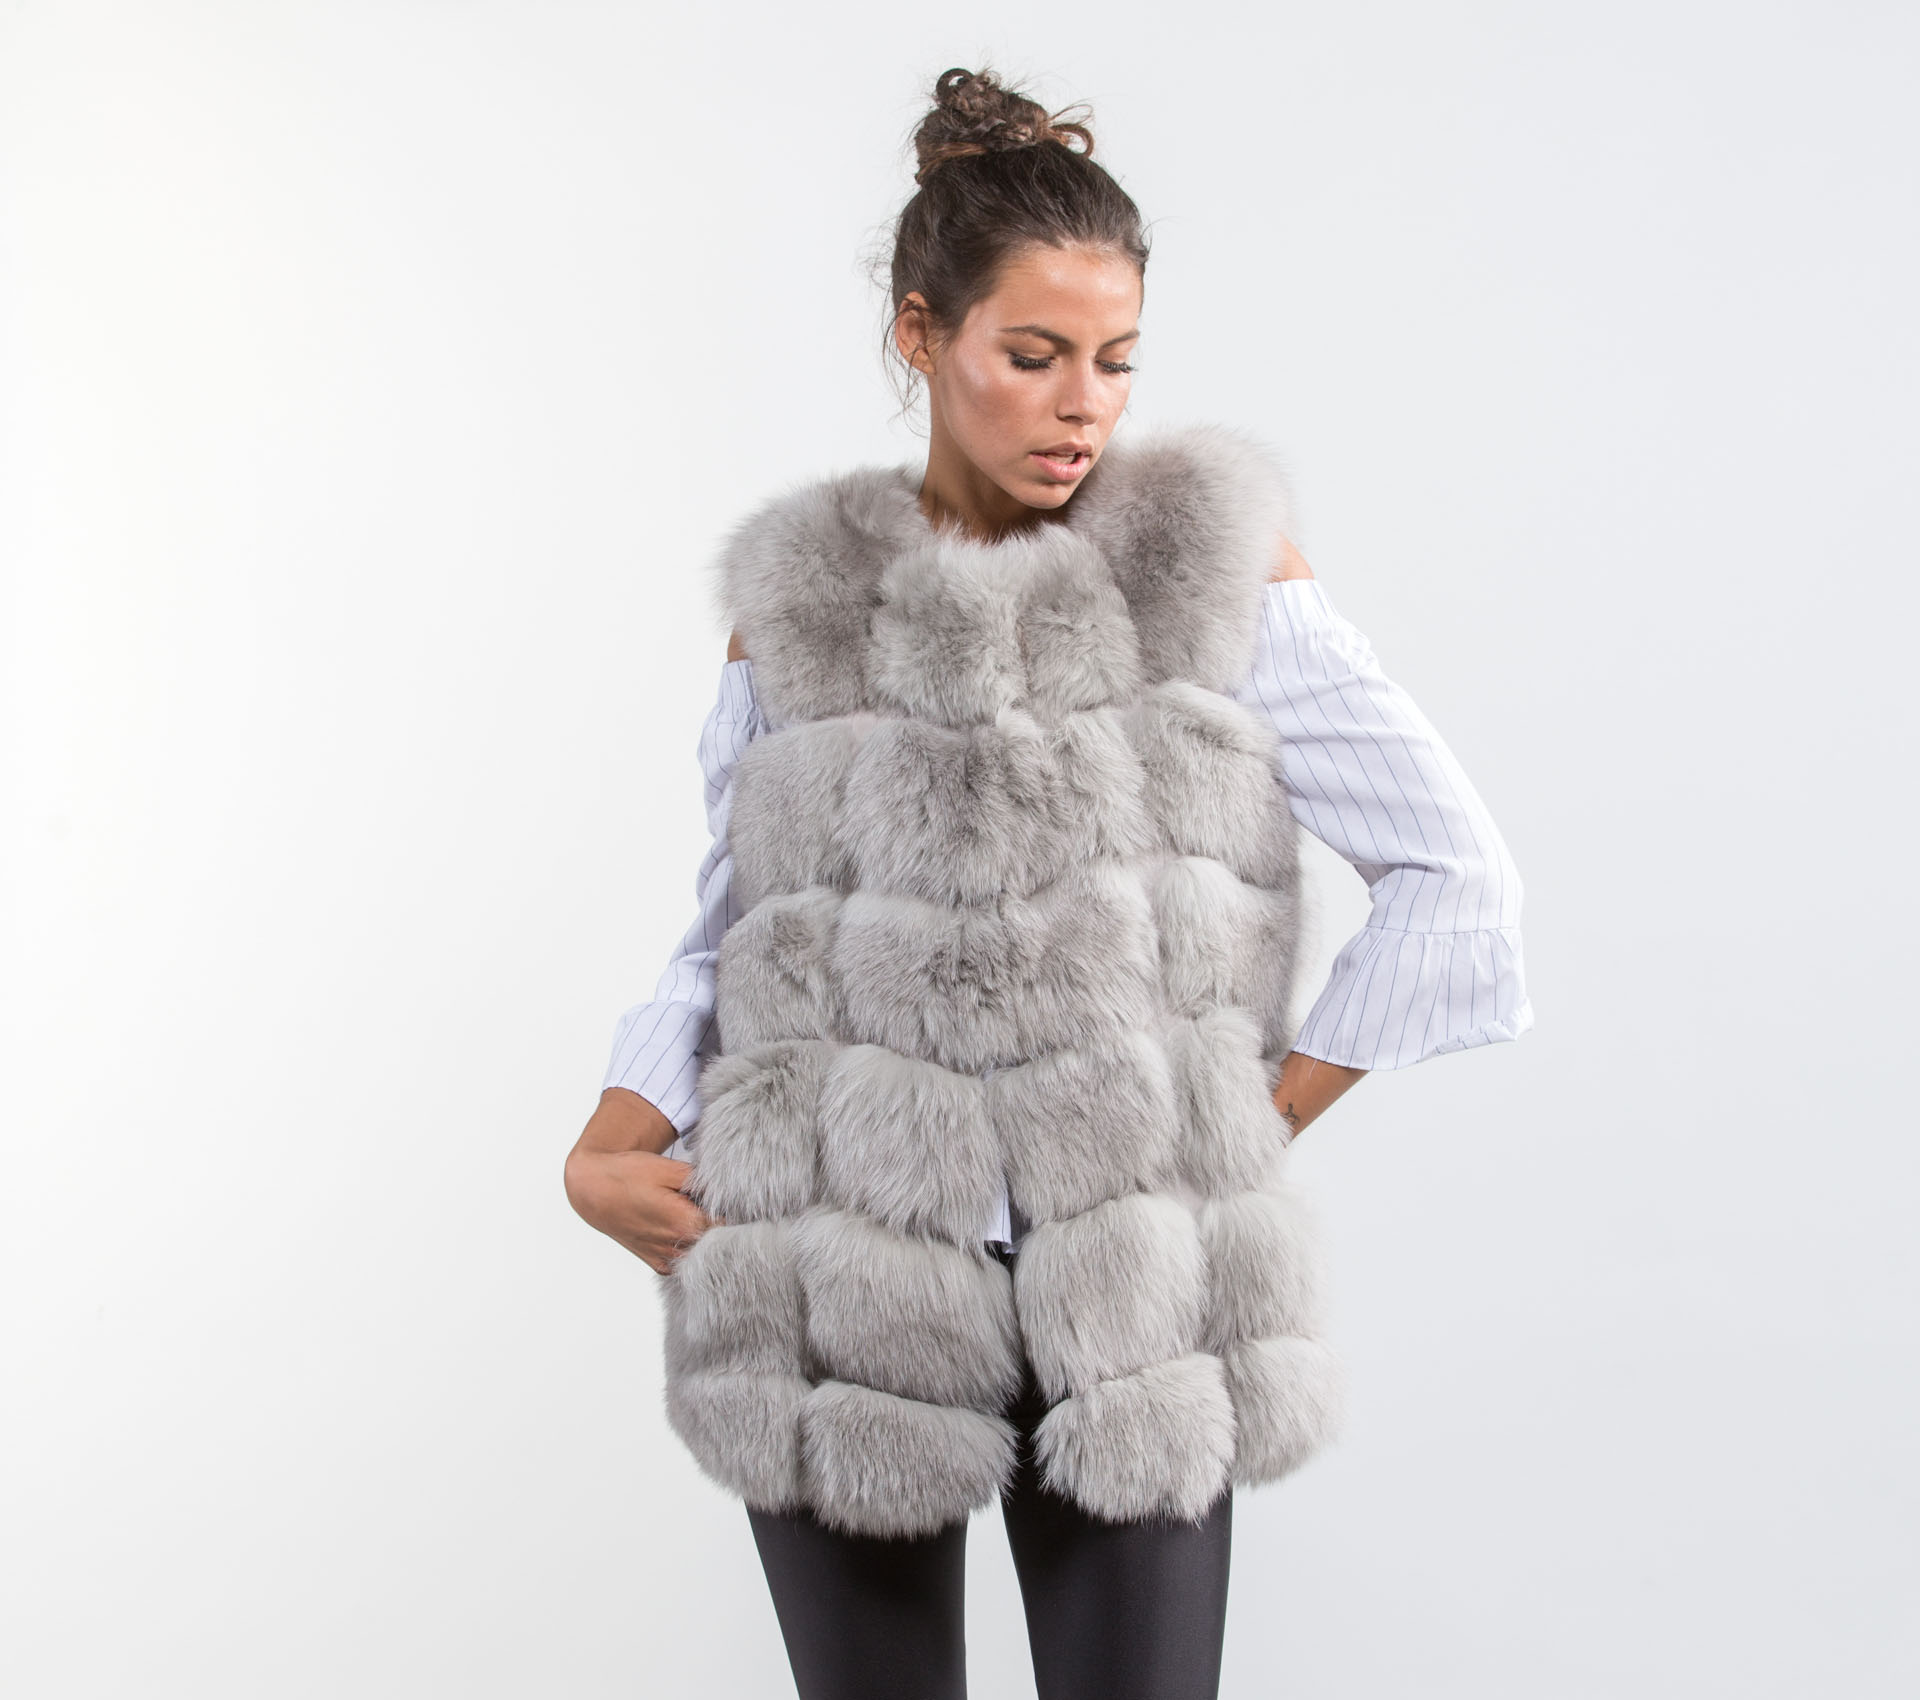 Real fox fur coats, jackets & fox fur vest, made of % high-quality fox fur. Worldwide Shipping! Step inside to check all offers and deals!